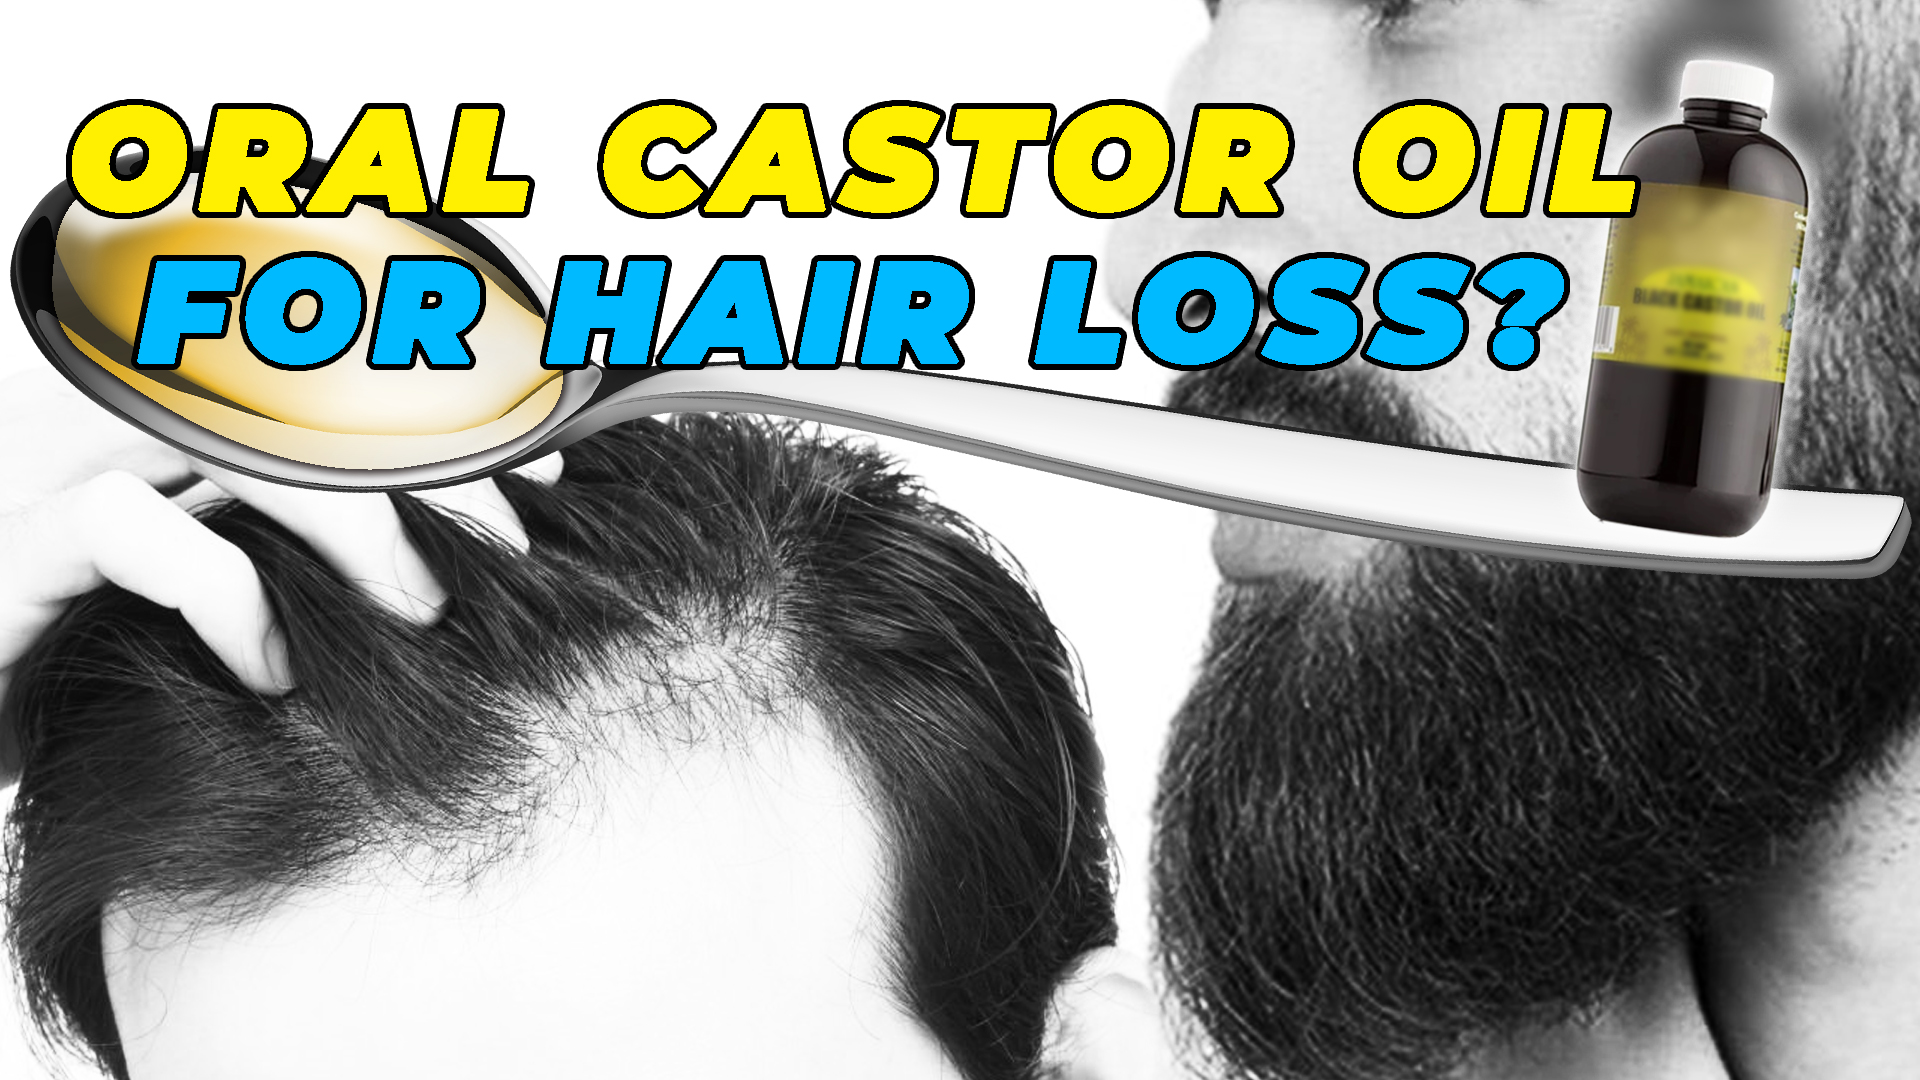 Oral Castor Oil for Hair Loss?